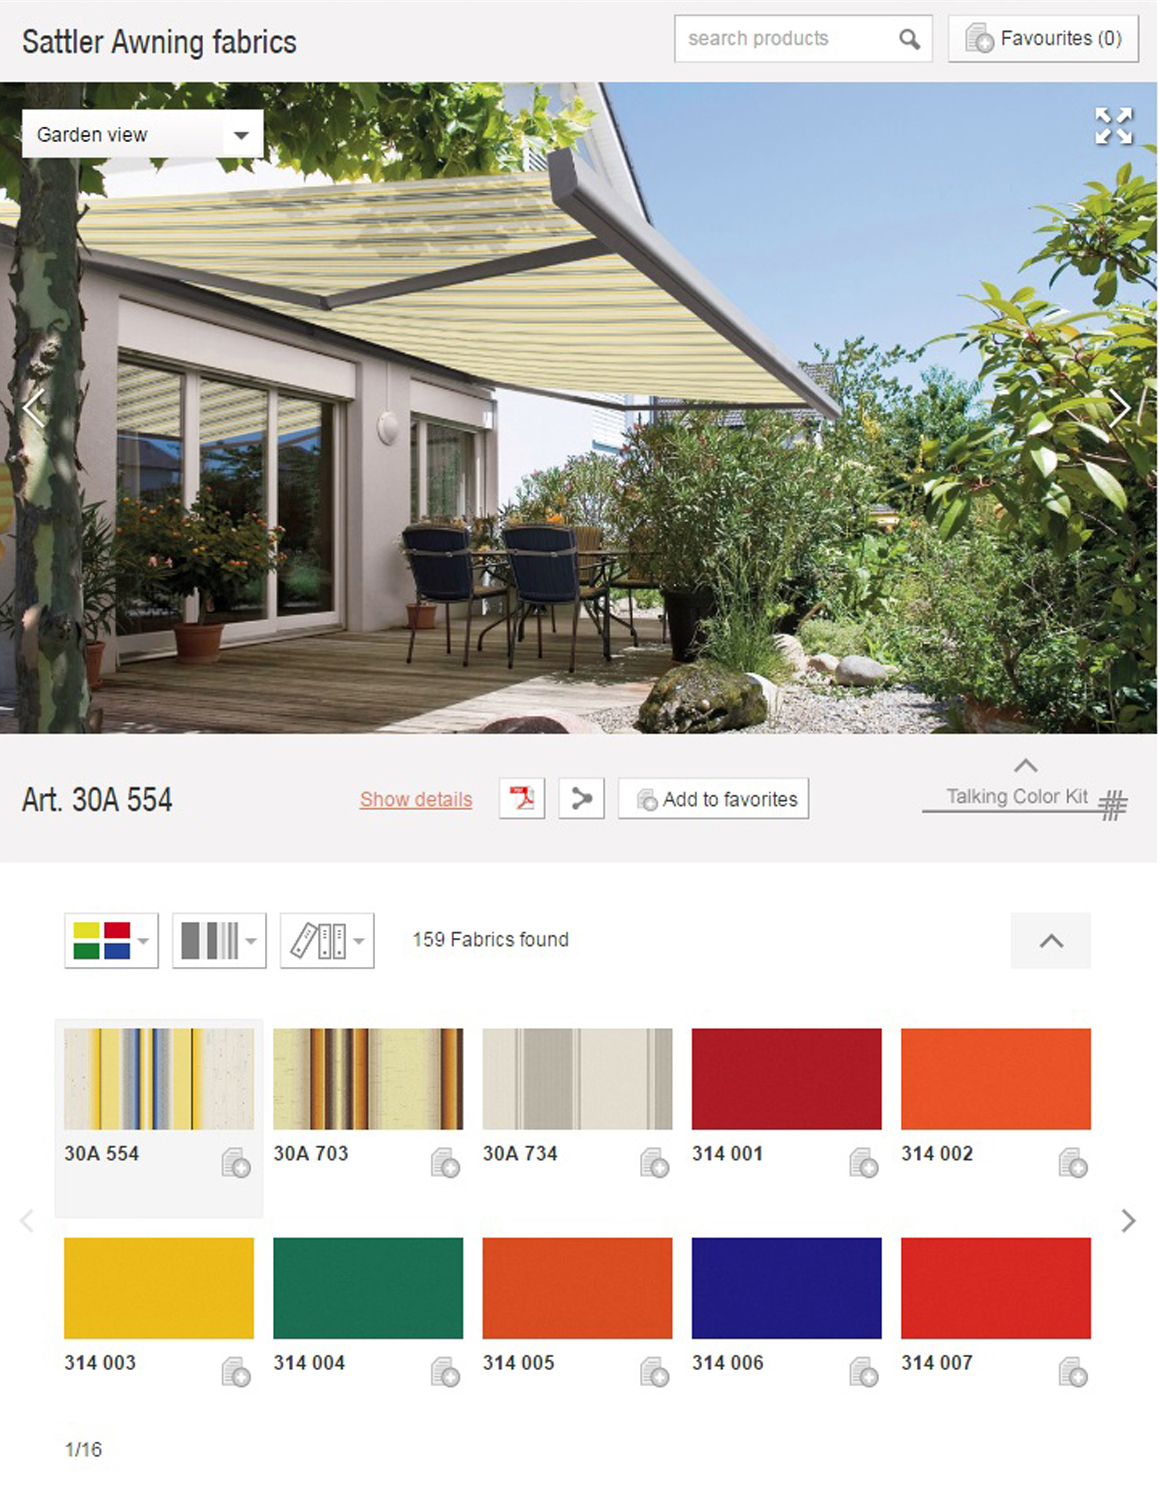 click on image for  Sattler Awning fabrics app